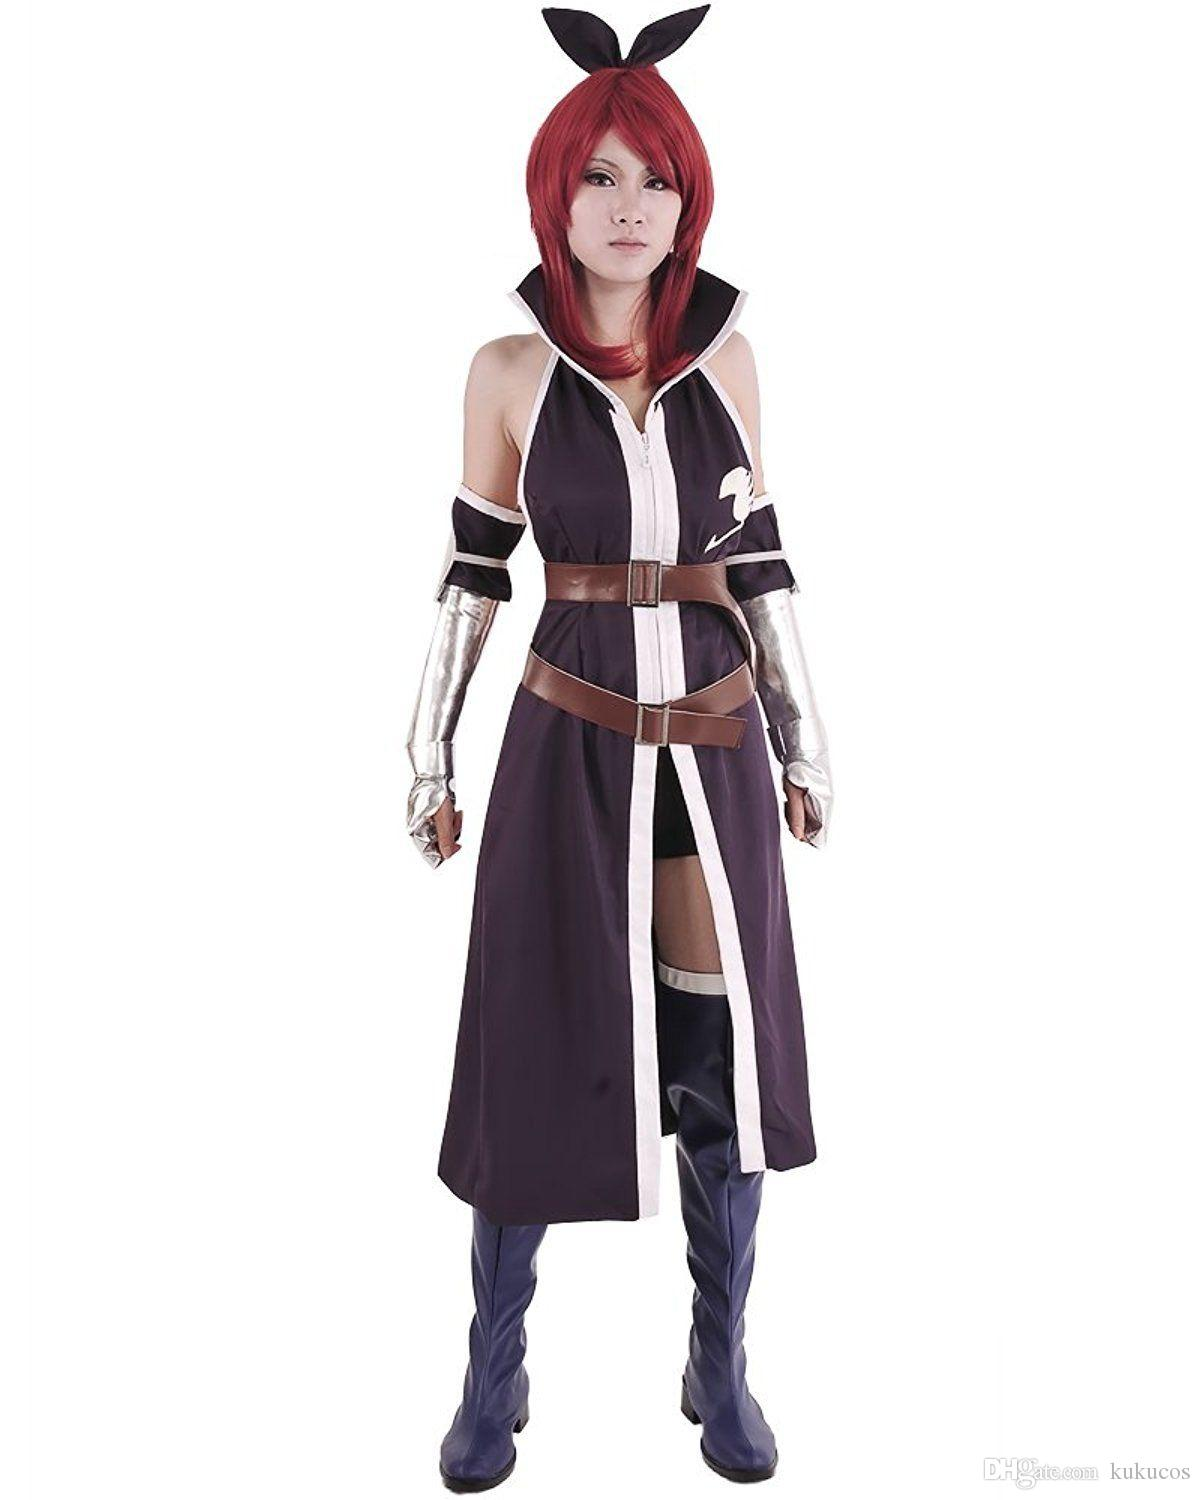 Kukucos Anime Super Cool Fairy Tail Cloak Erza Scarlet ...